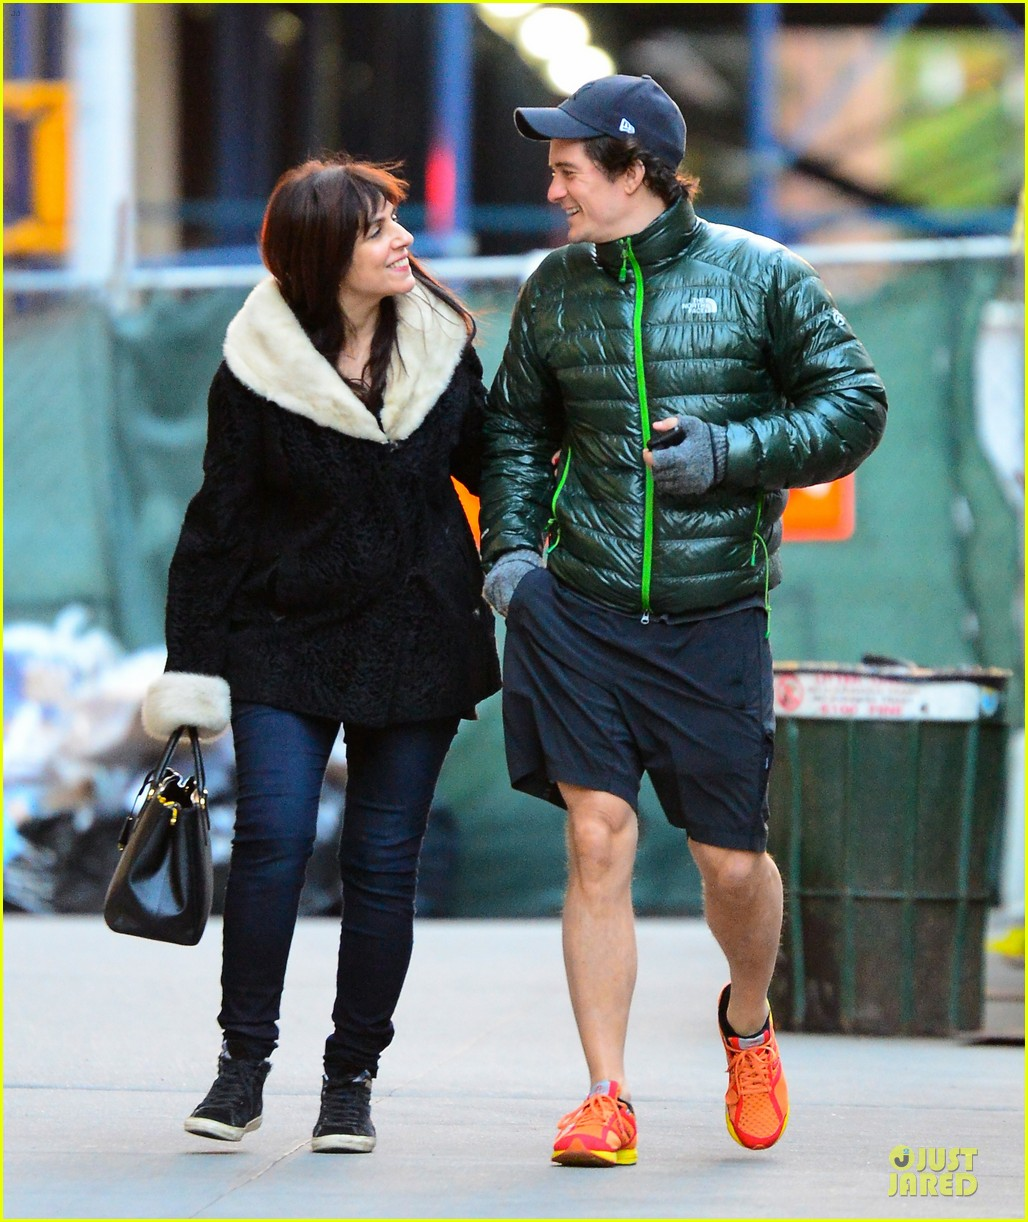 orlando bloom hooks arms with mystery woman in nyc 052988608